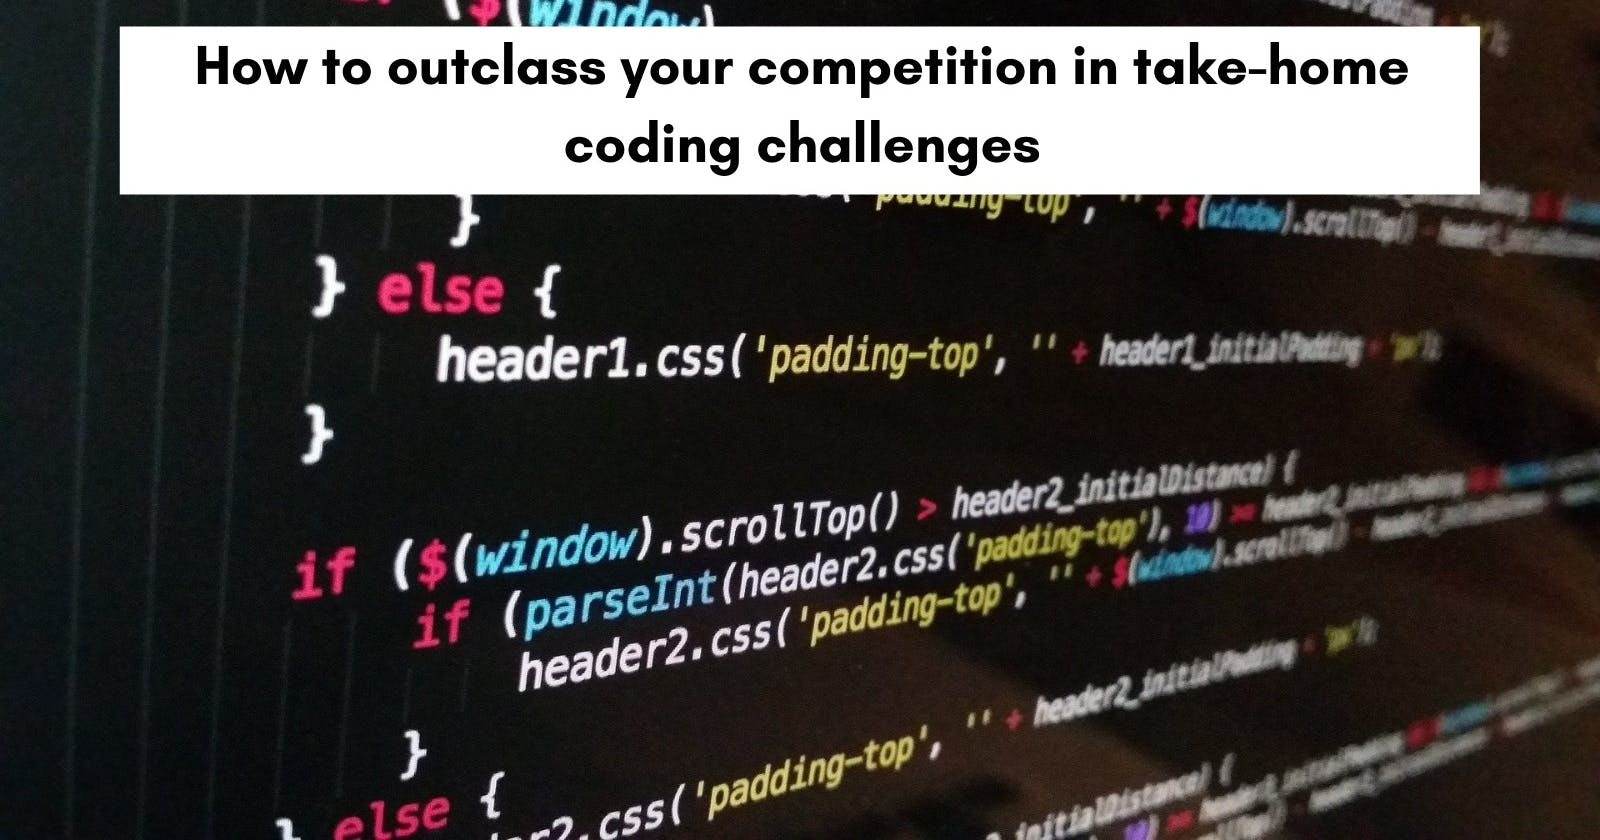 How to outperform your competition in take-home coding challenges